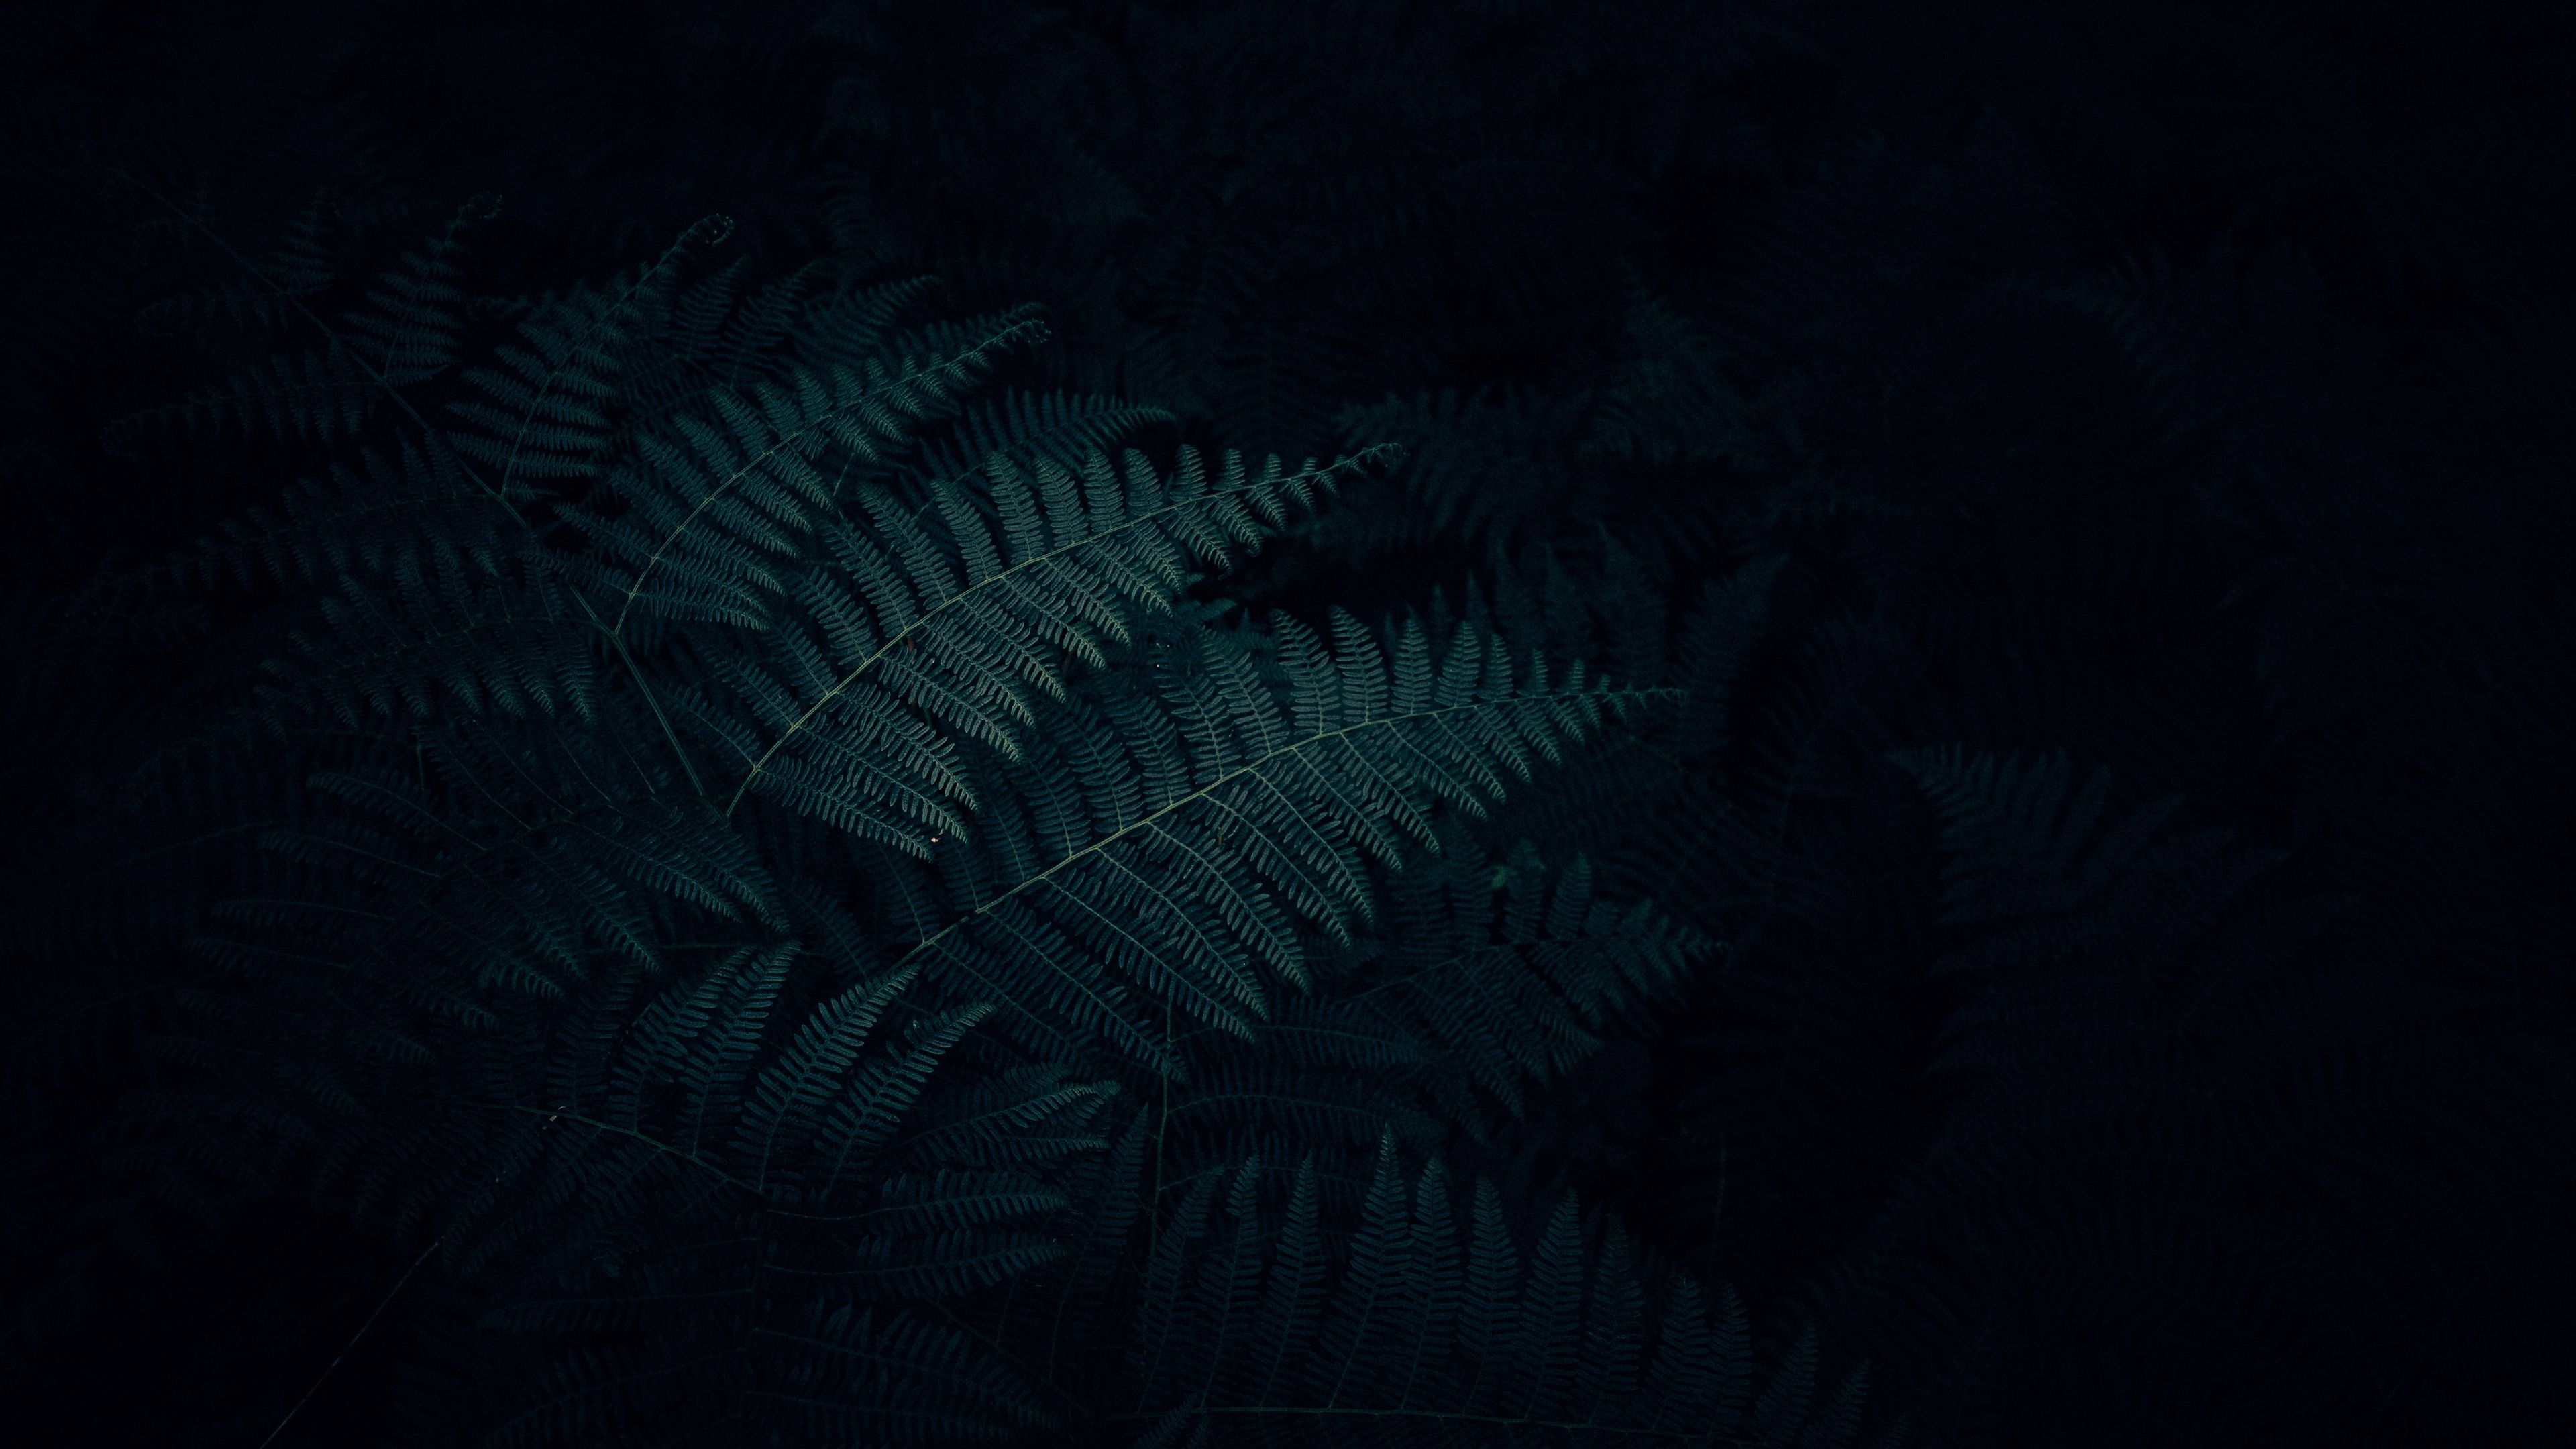 Fern Leaves Plant Dark Carved 4k Plant Leaves Fern Dark Wallpaper Carving Nature Wallpaper